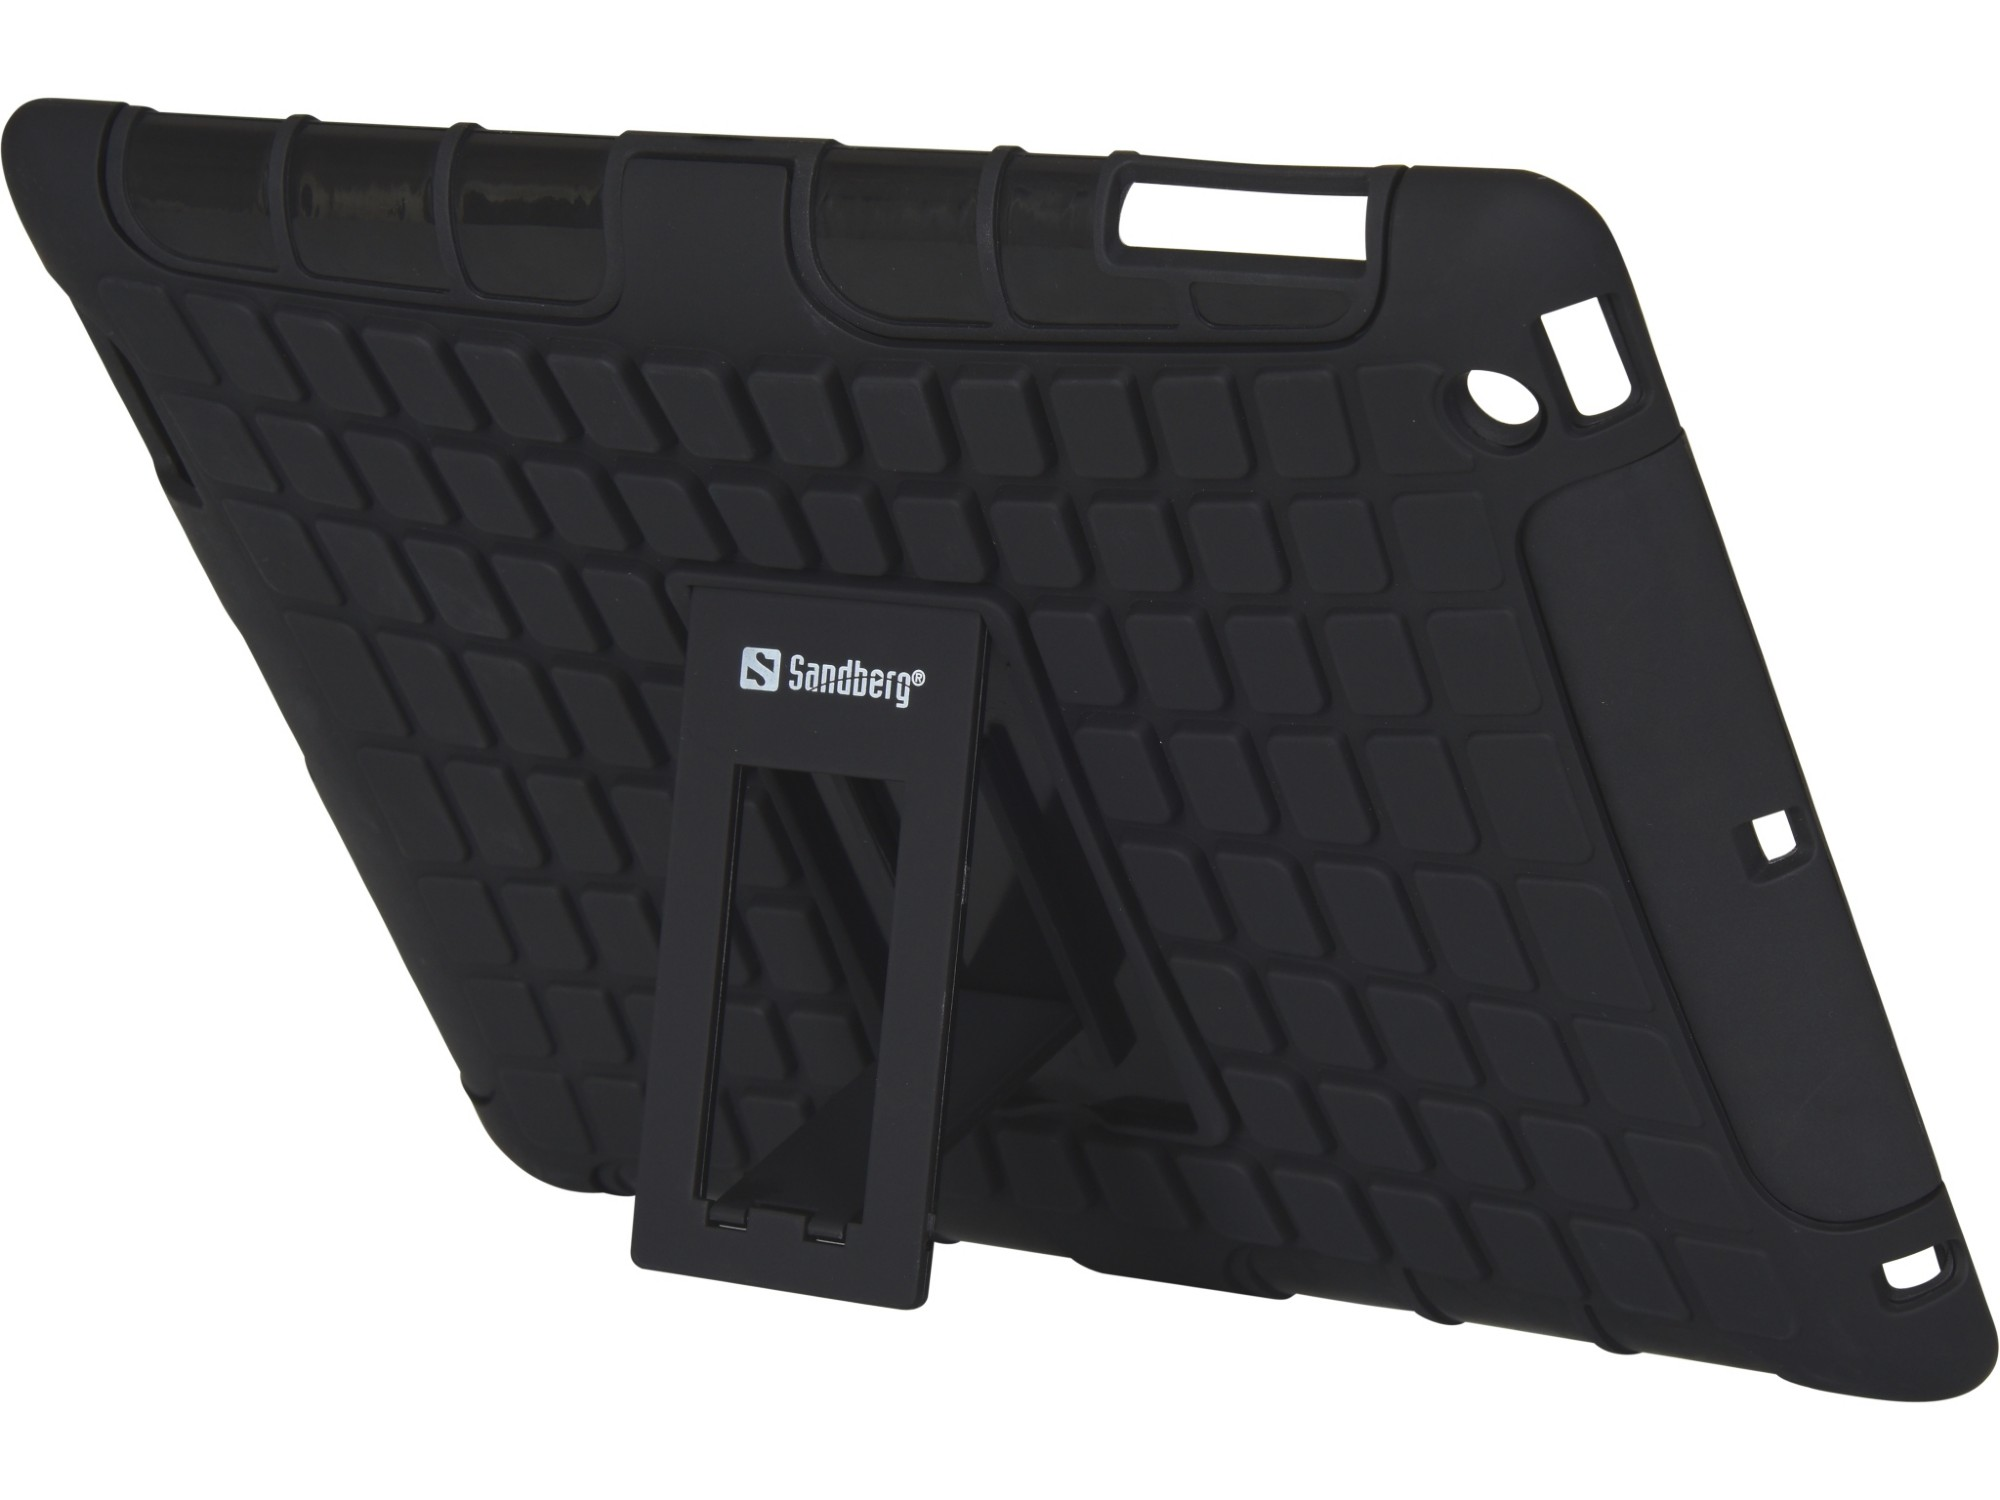 SANDBERG 406-07 ACTIONCASE FOR IPAD 2/3/4